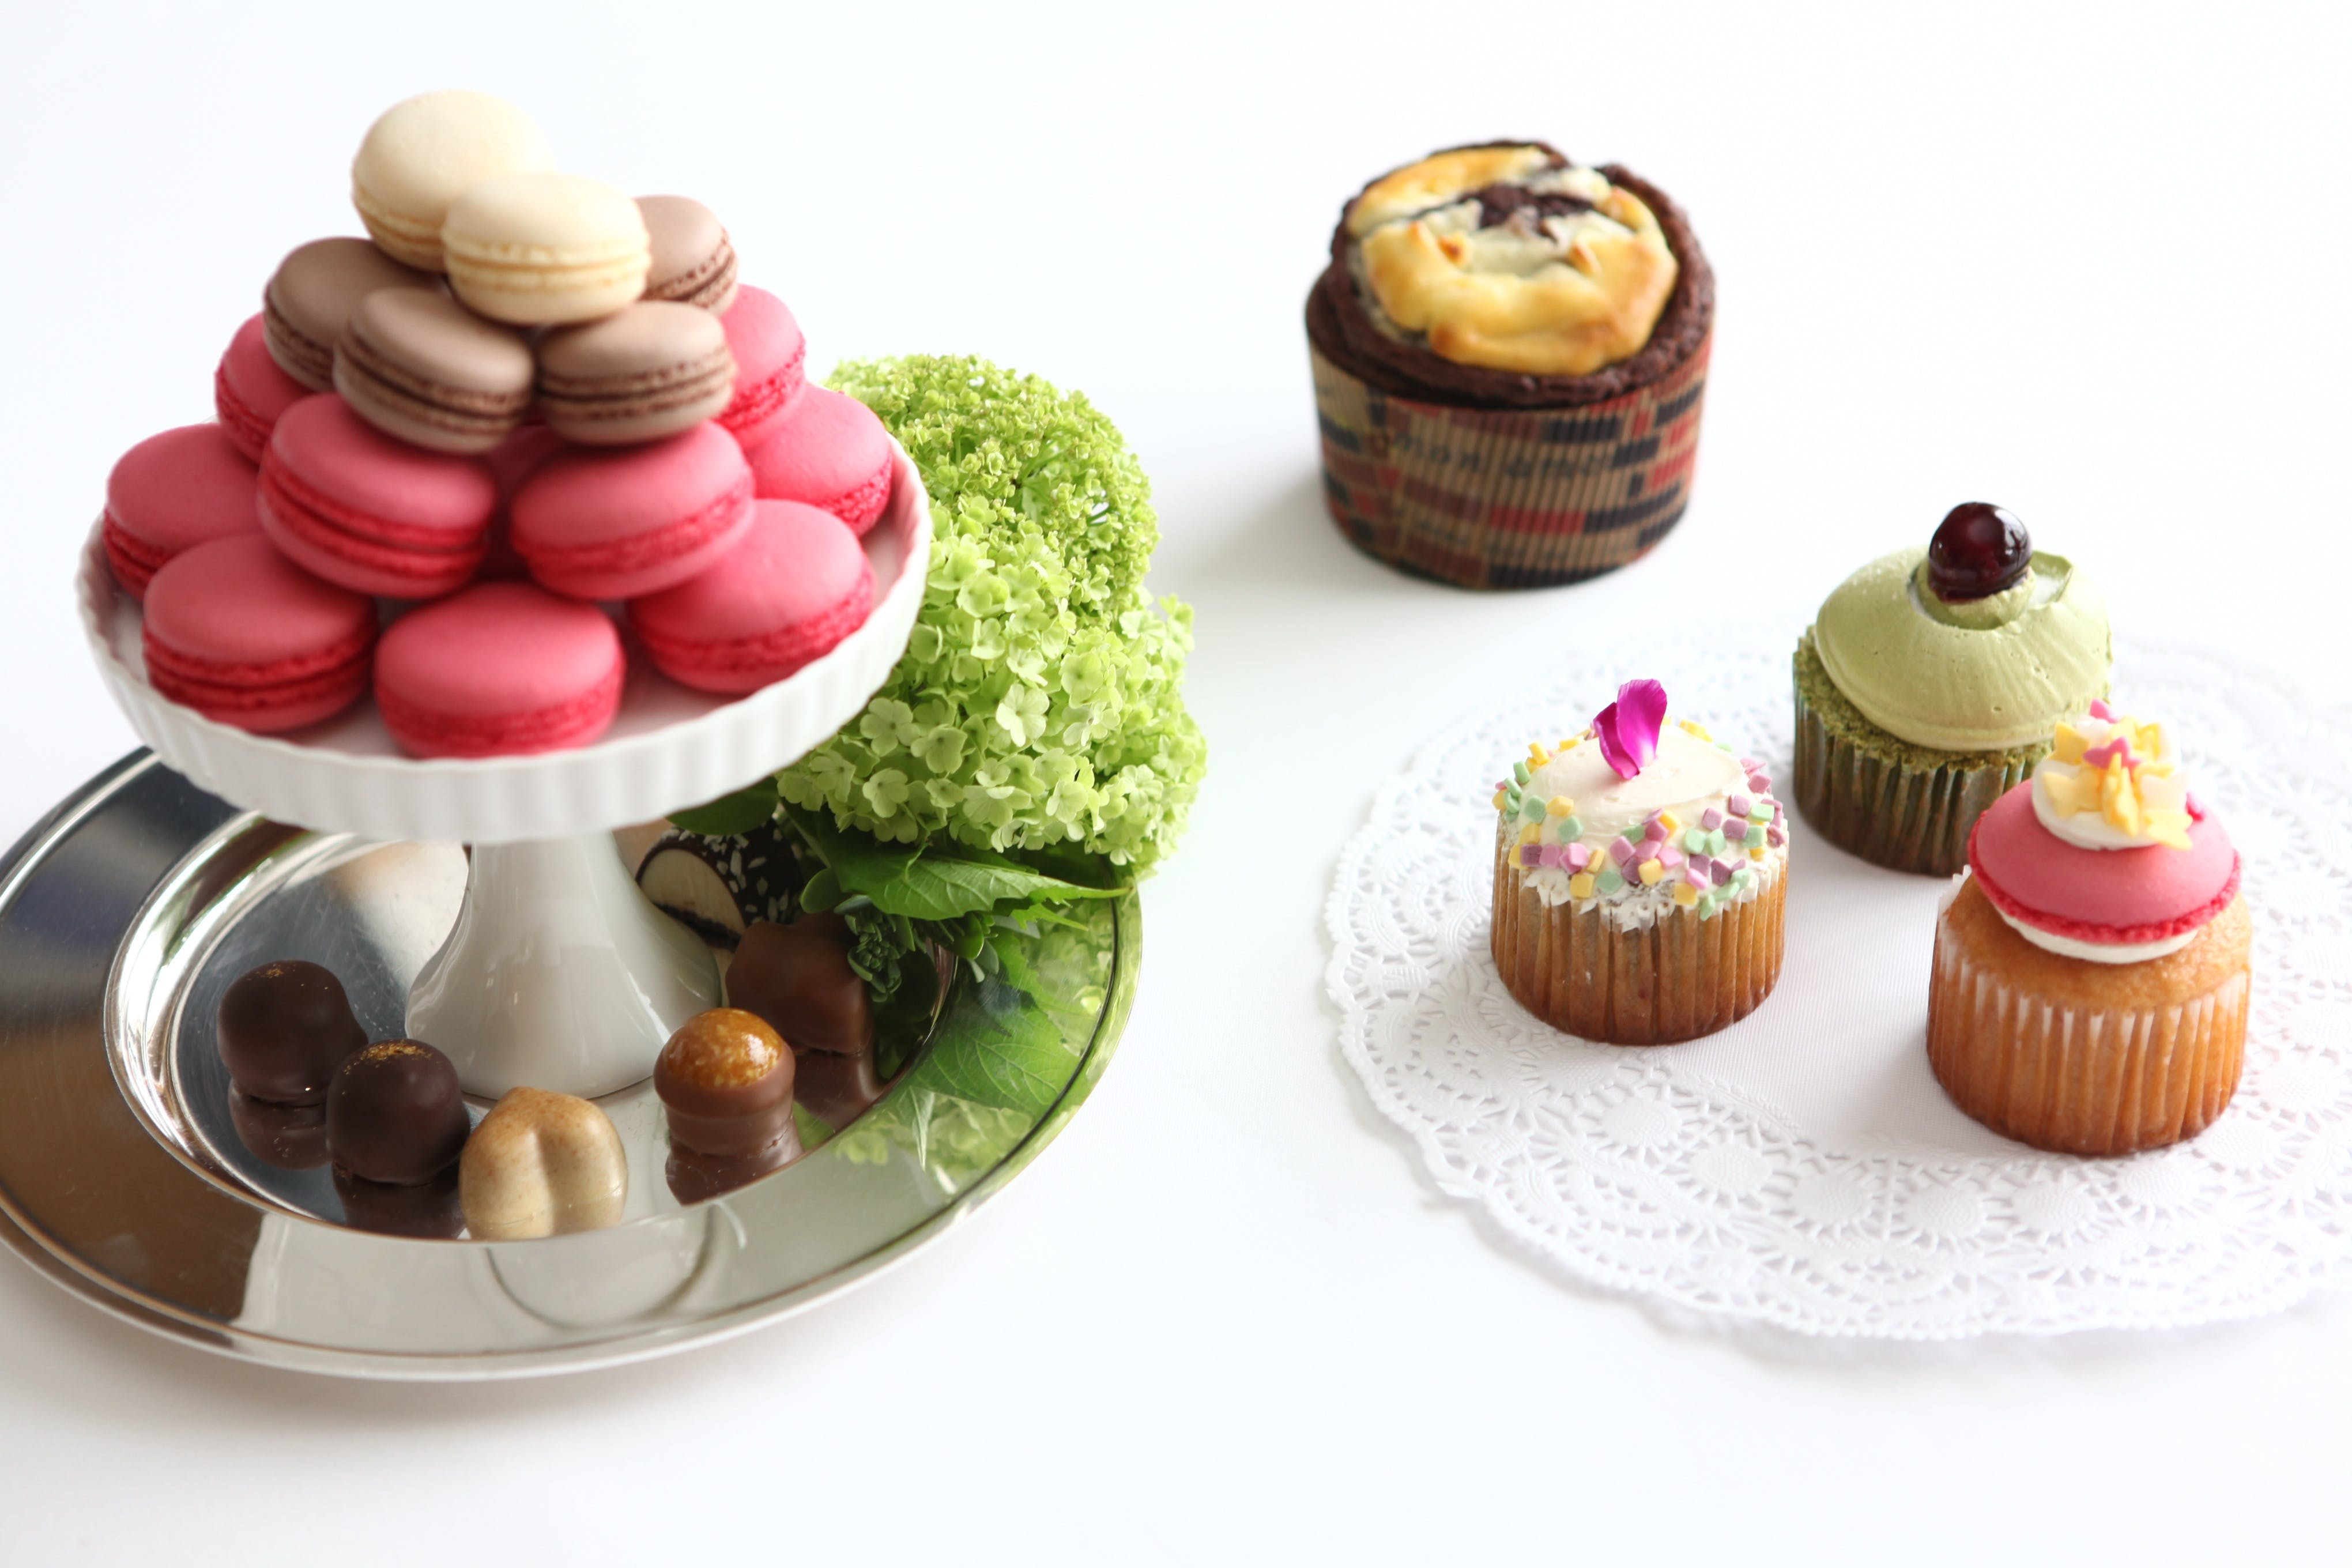 Desserts on Tables